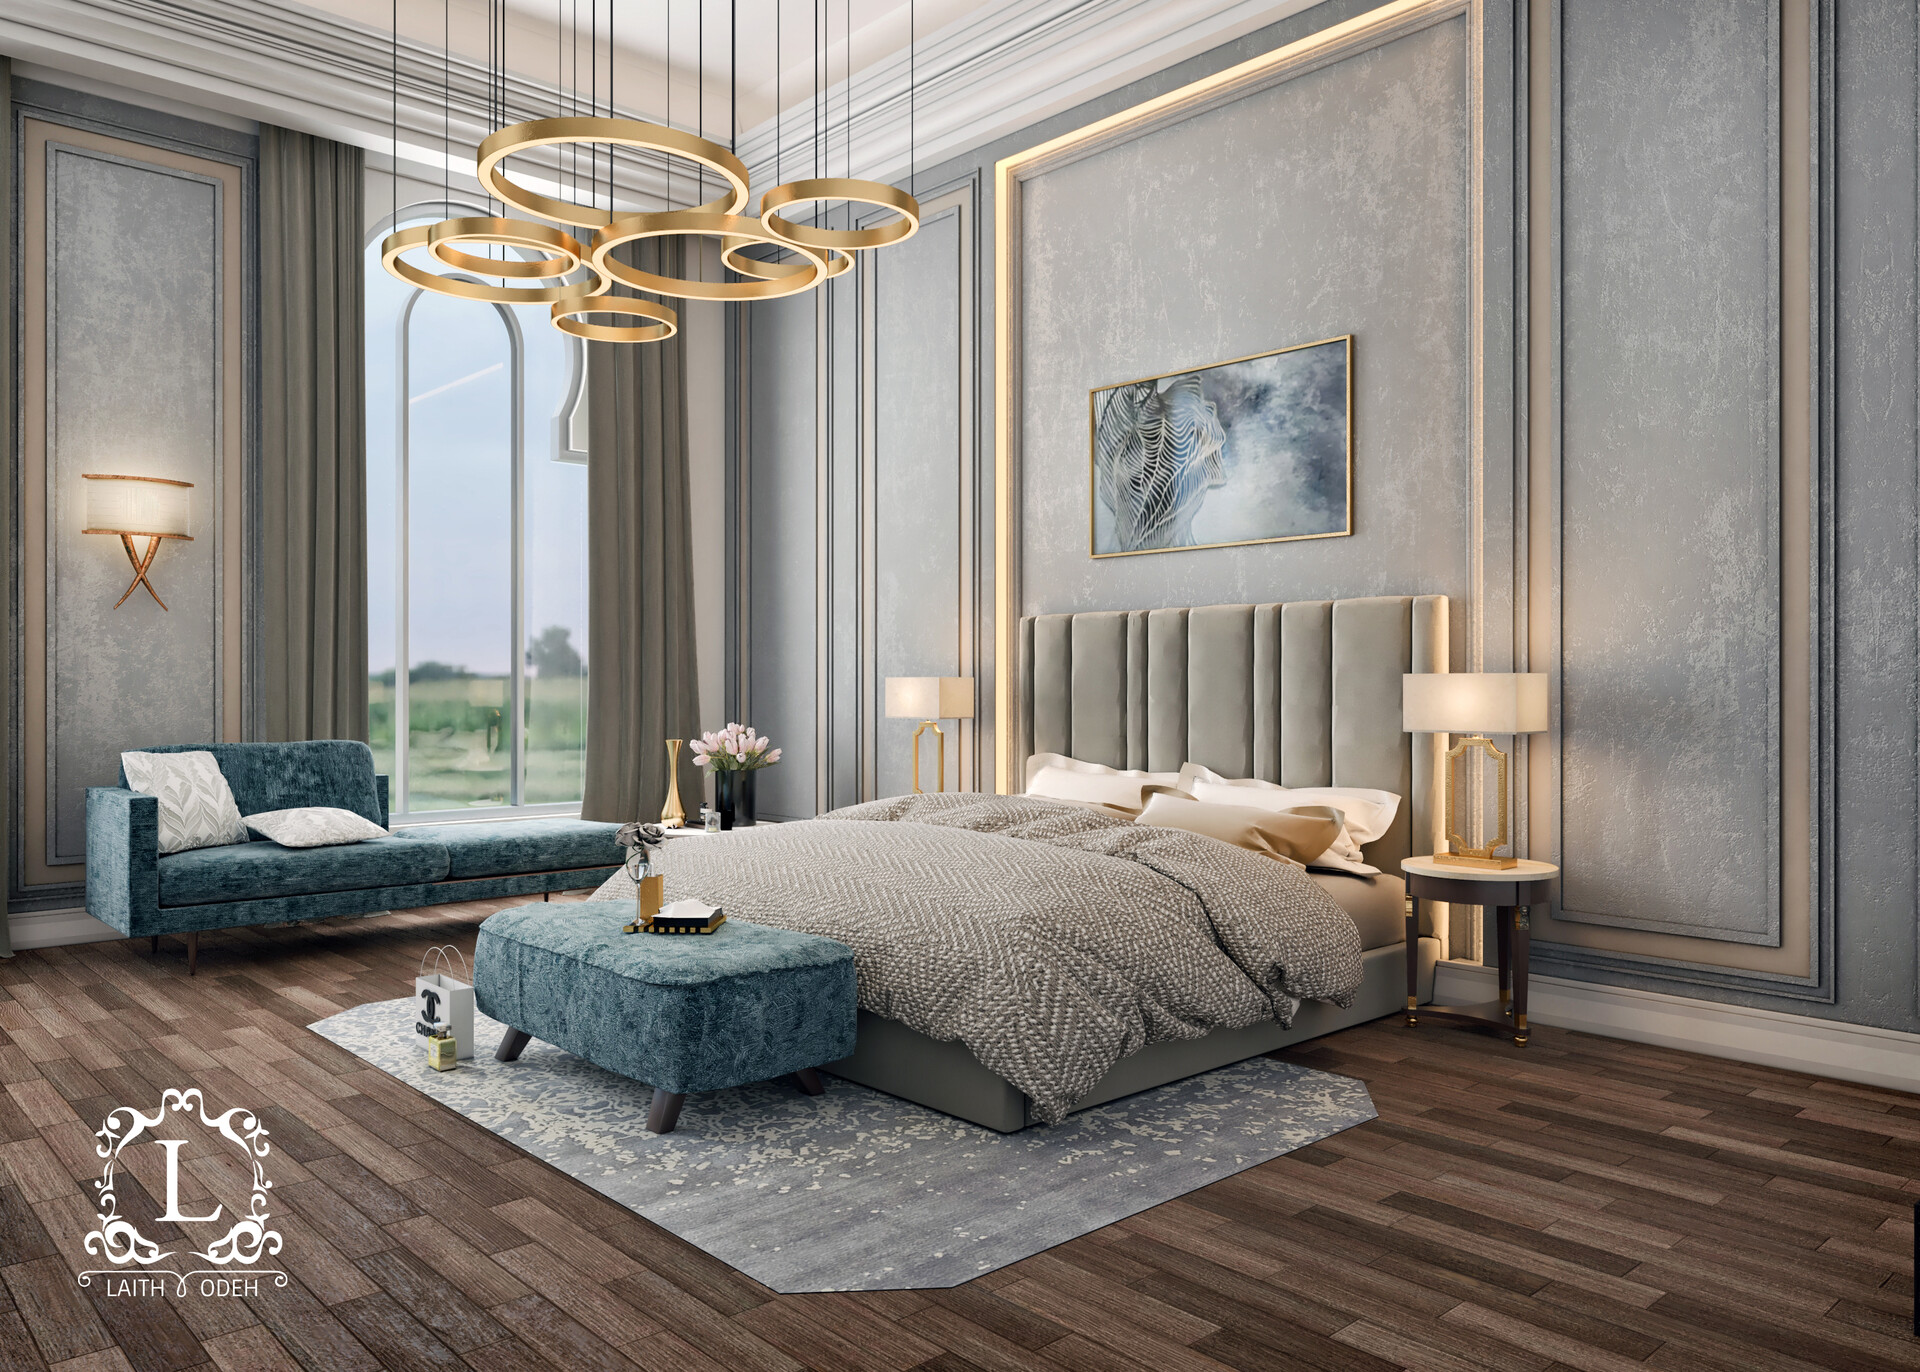 Artstation Luxurious Bedroom Sketchup V Ray Laith Odeh